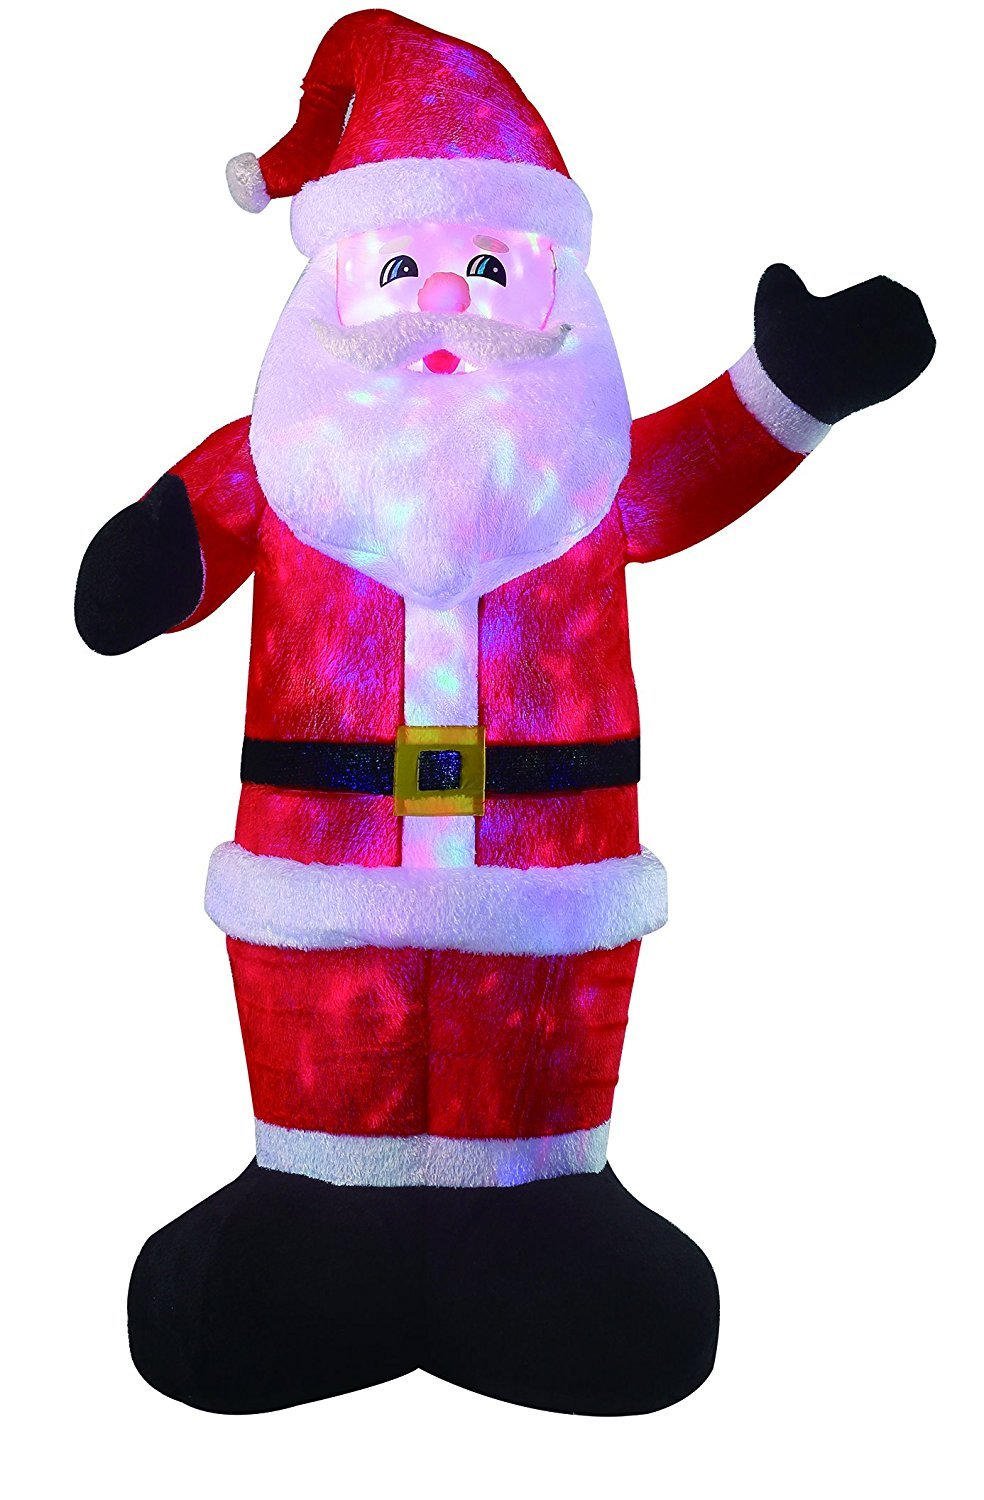 New 8 FT Inflatable Plush Santa Clause With 2pcs Disco Lights Christmas X'mas Decoration by Beyond Shop USA (Image #2)